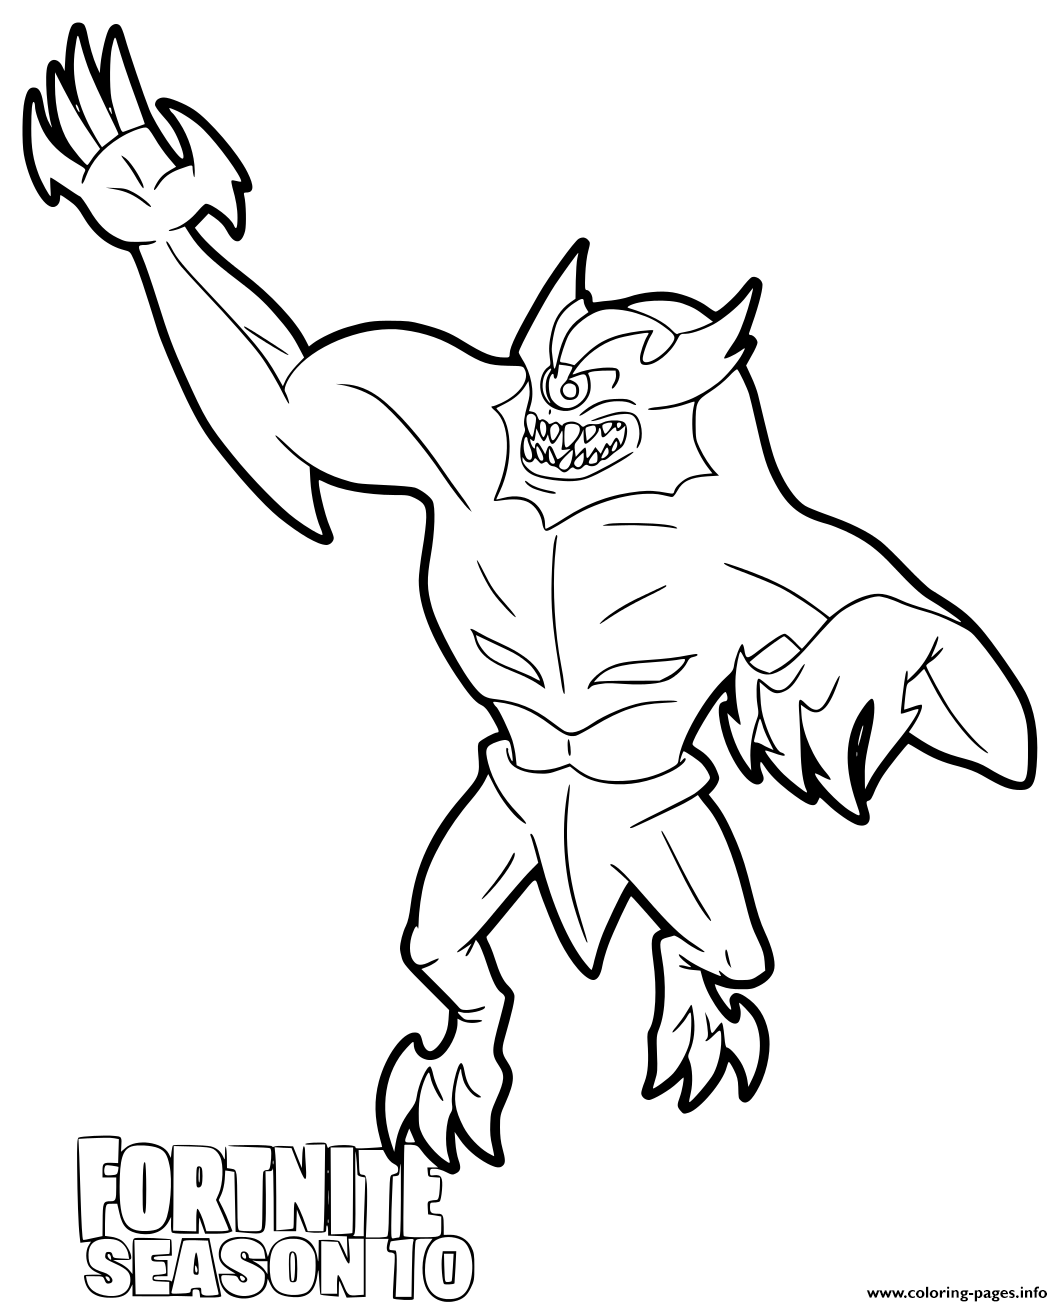 Ice Peak Monster Fortnite Season 10 Coloring Pages Printable